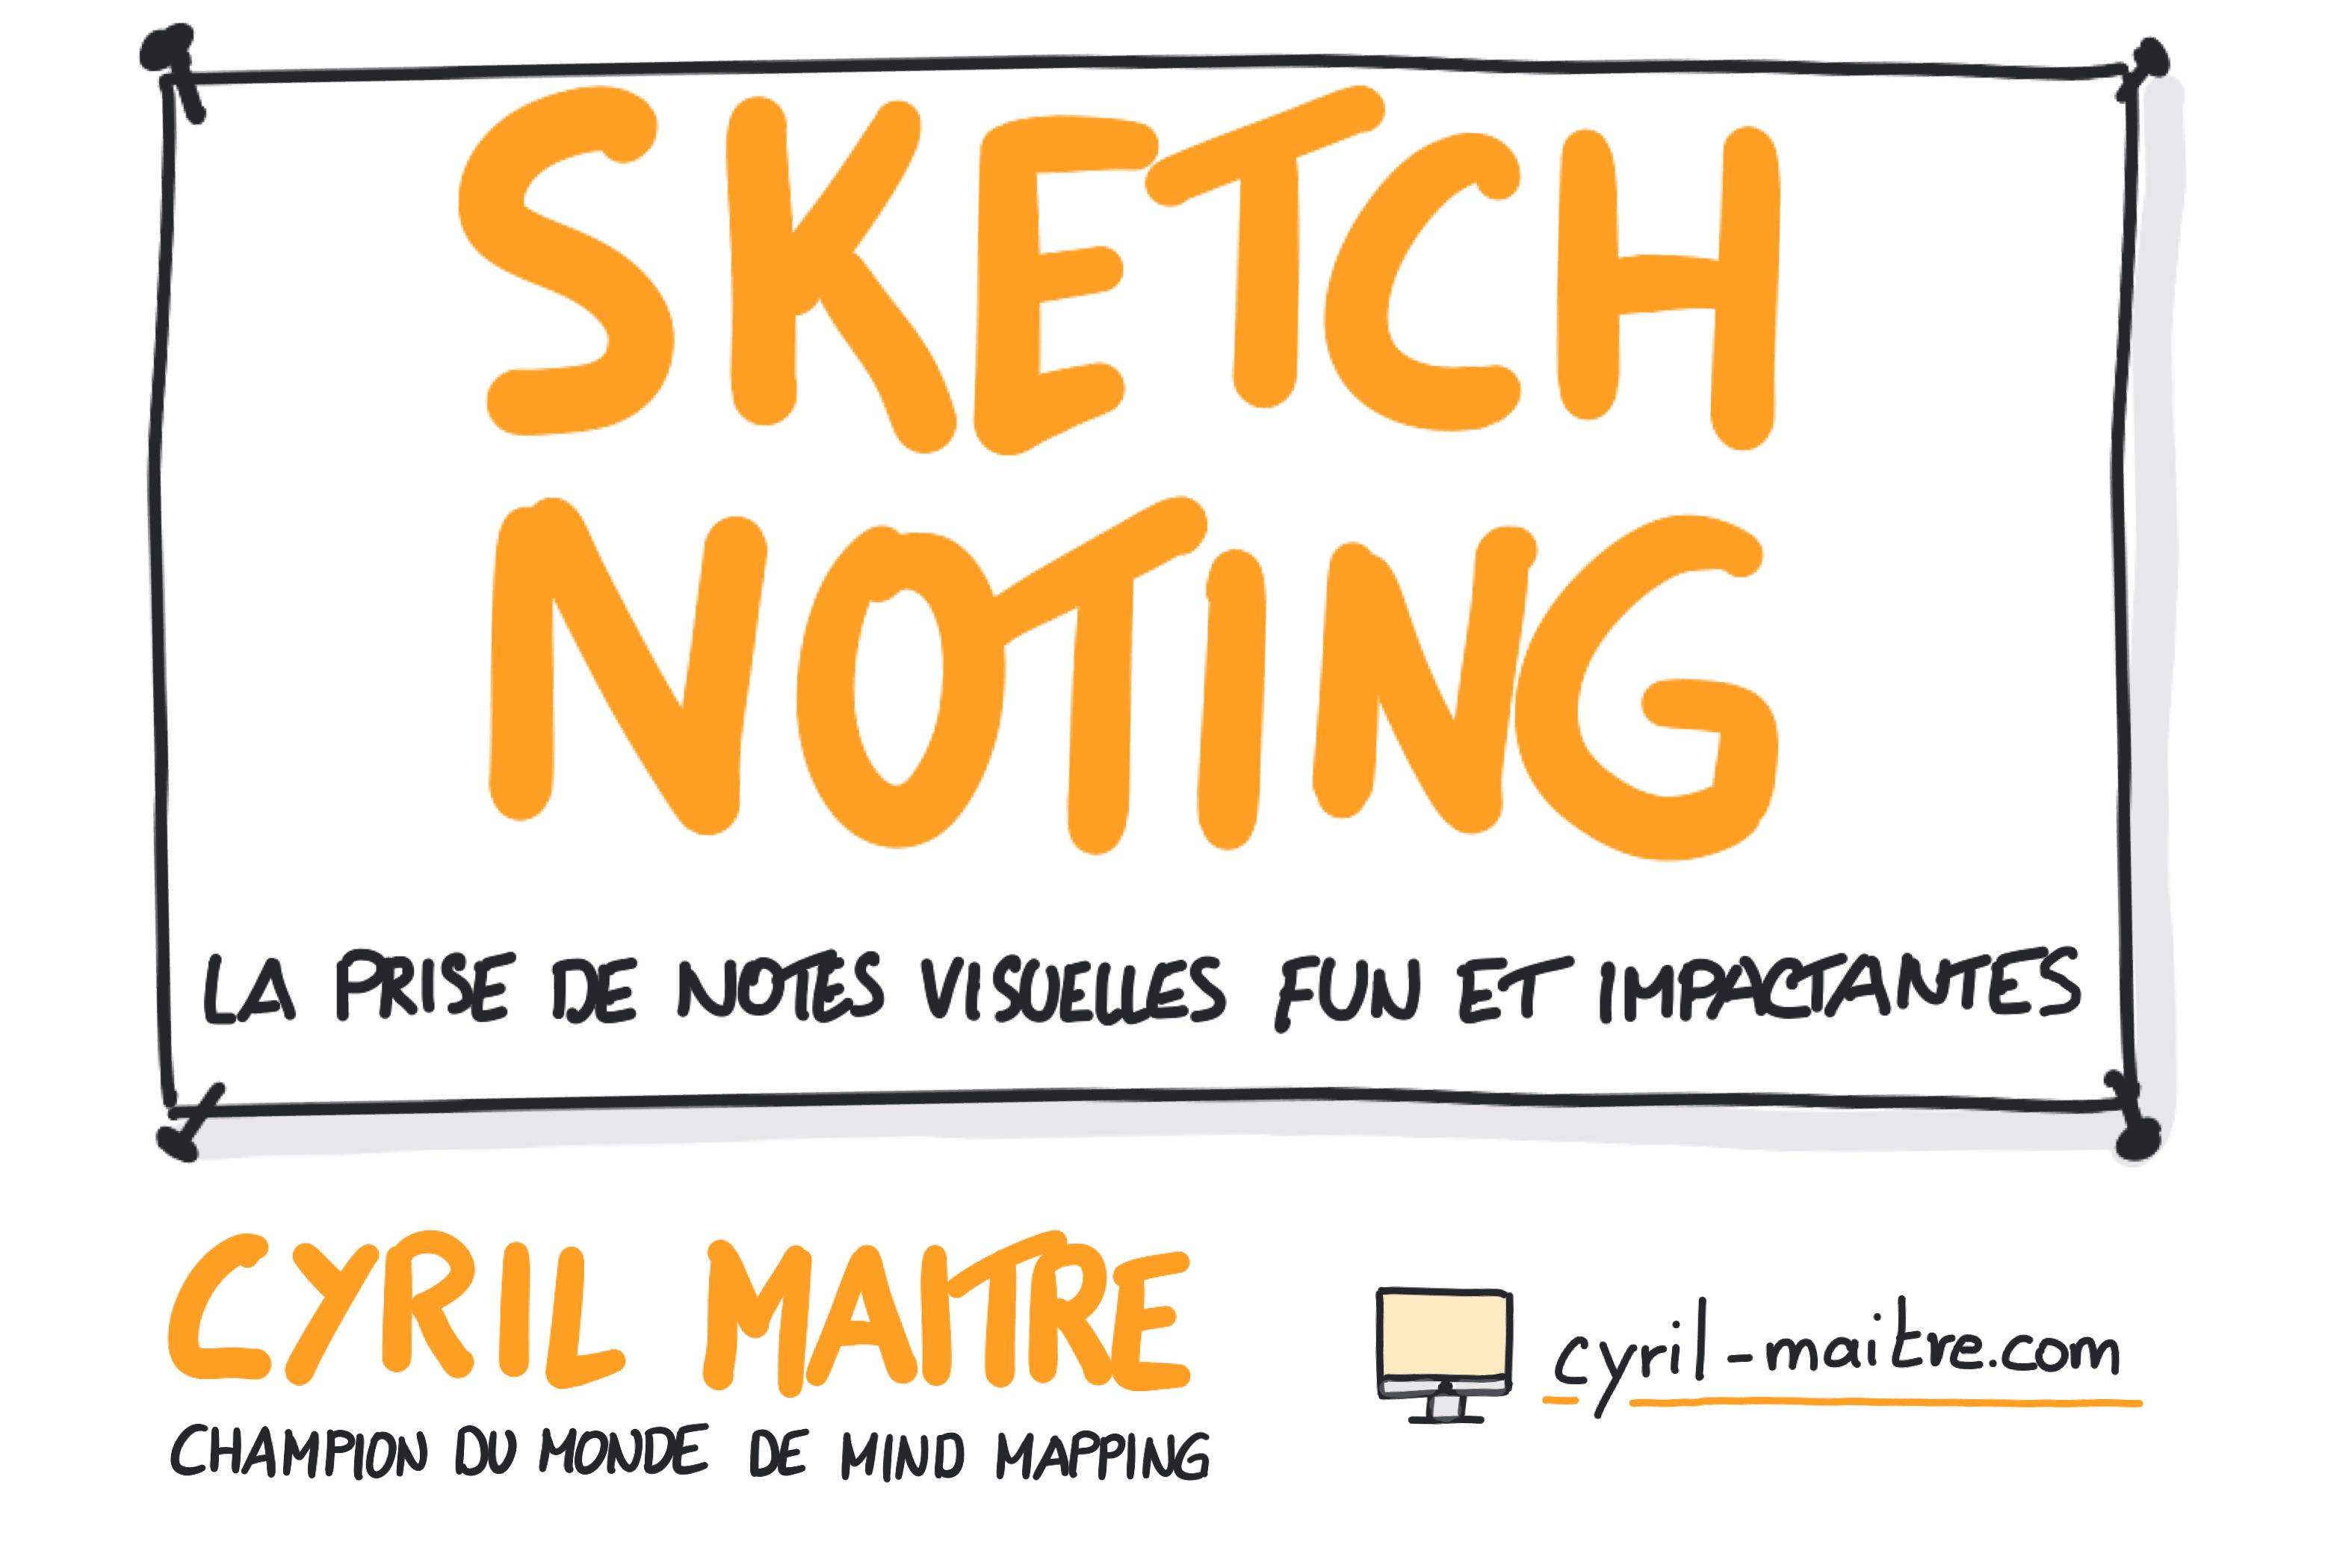 Les formations Zoom Praticien Sketchnoting